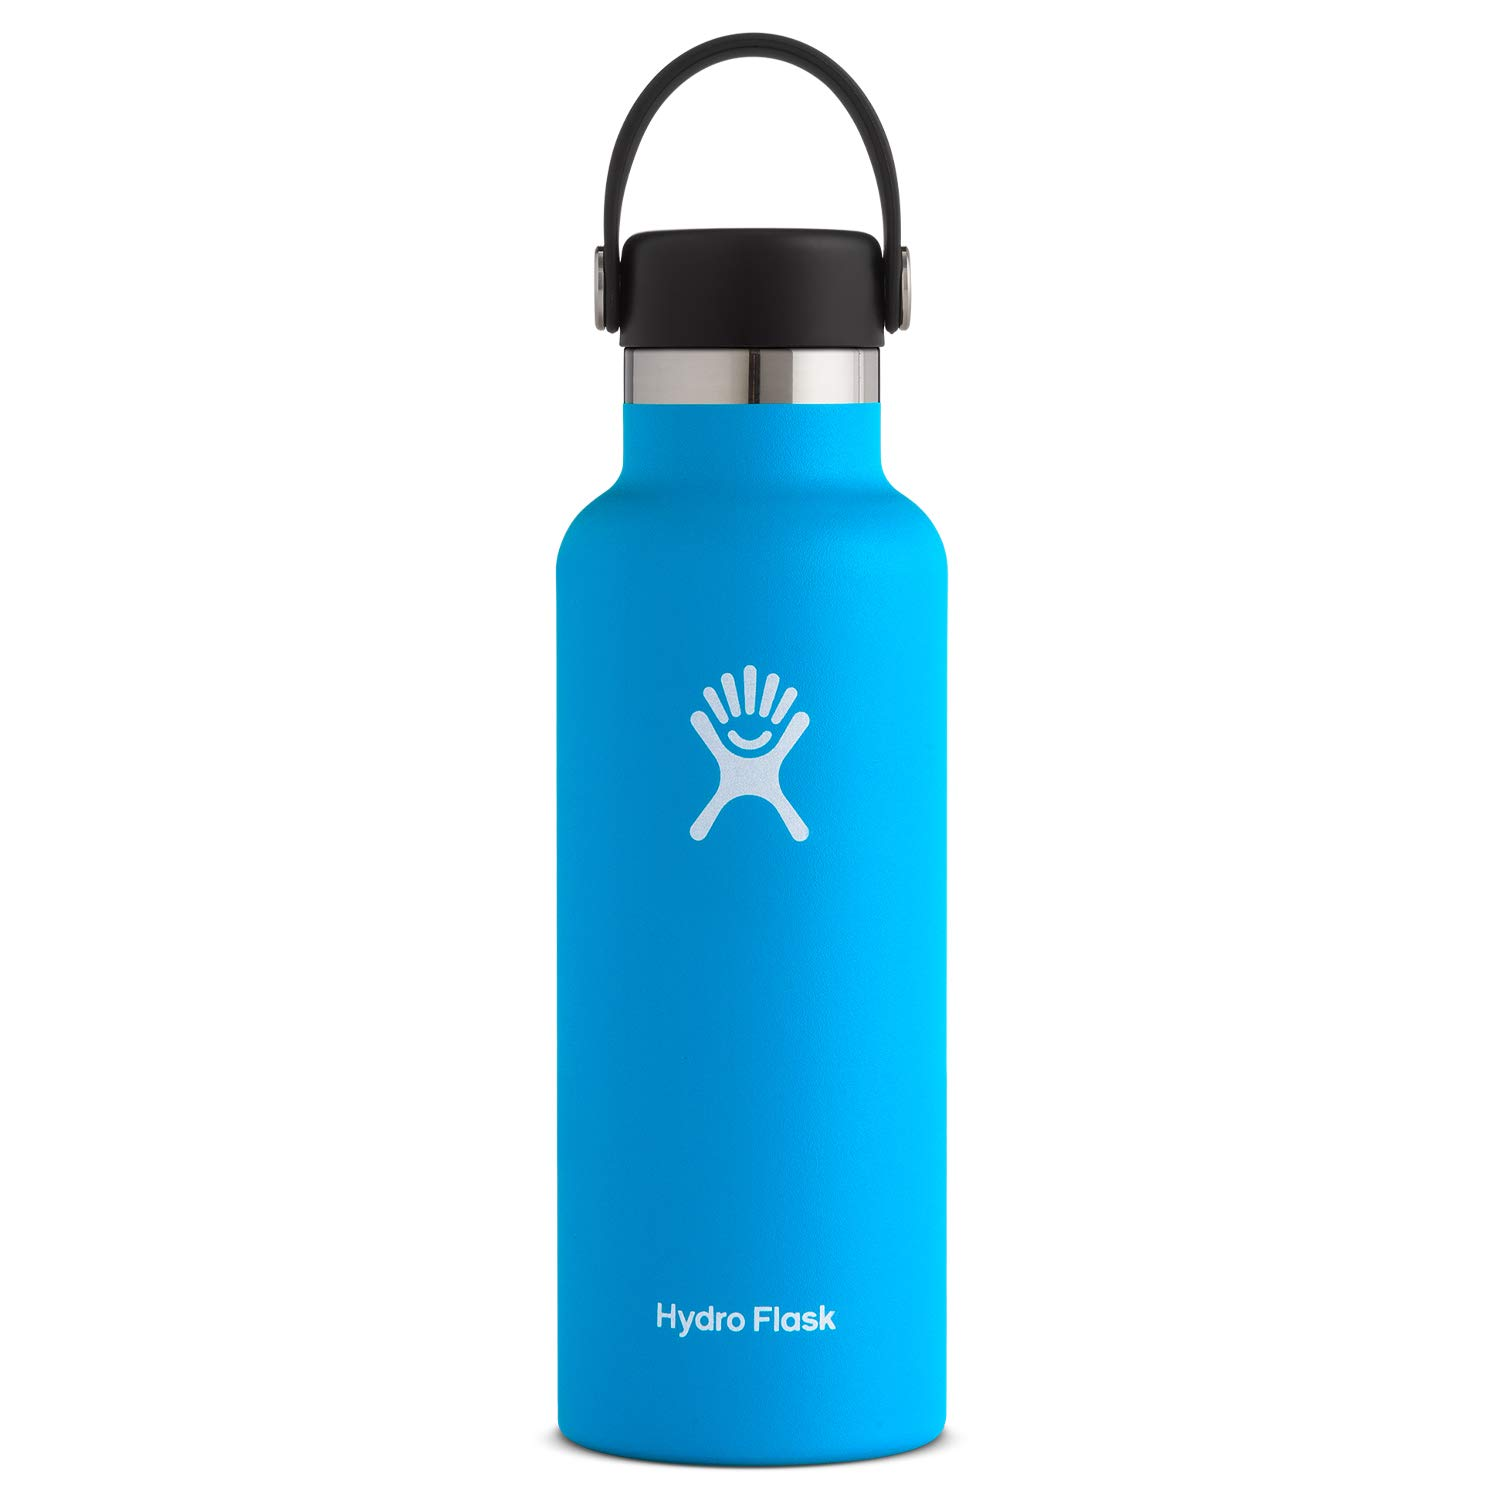 Hydro Flask Standard Mouth Water Bottle, Flex Cap - 18 oz, Pacific by Hydro Flask